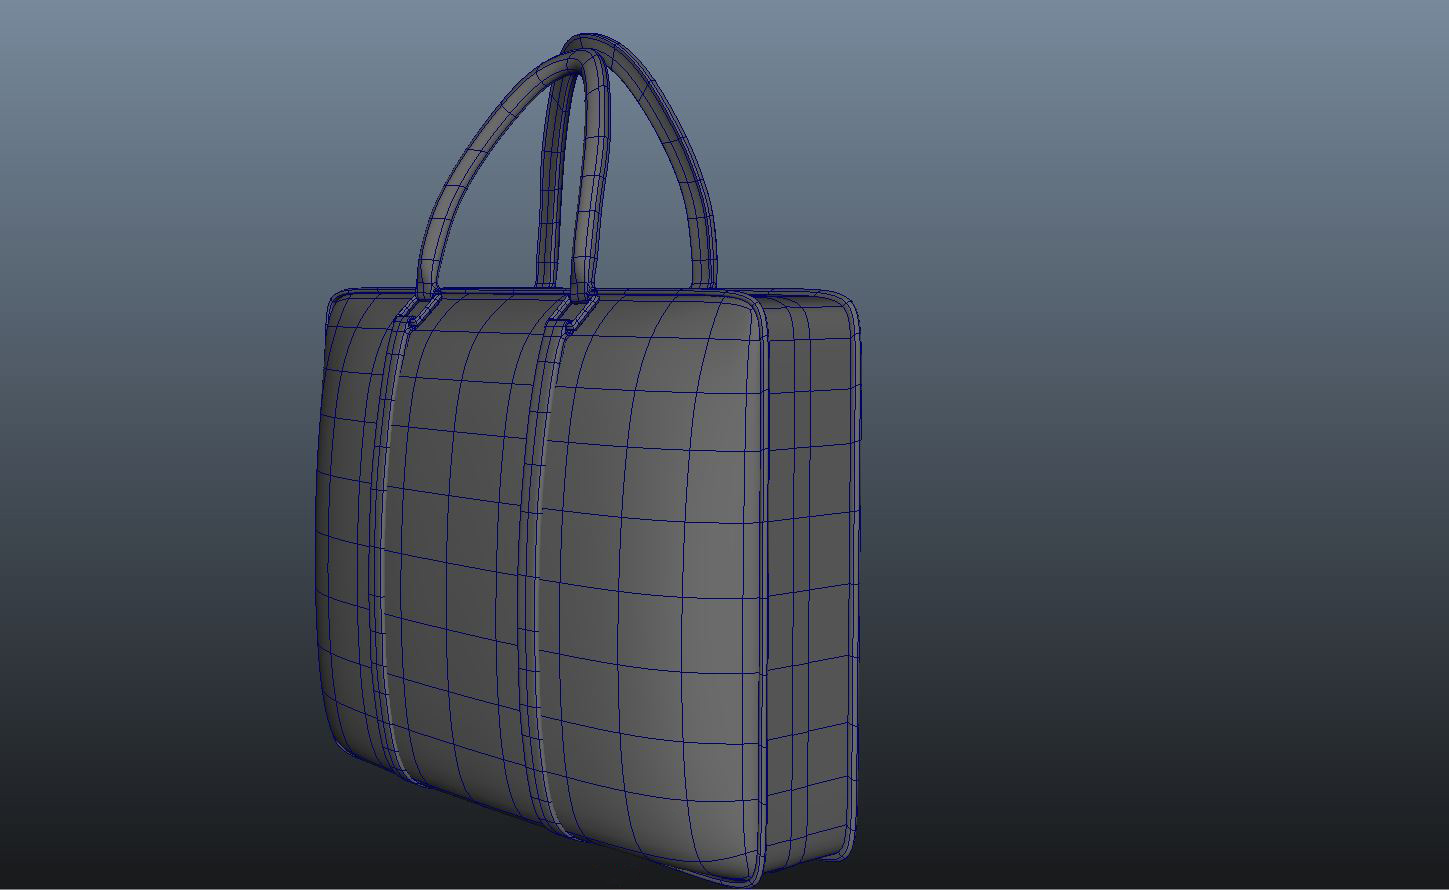 ladies handbag 3d model max fbx ma mb obj 286064